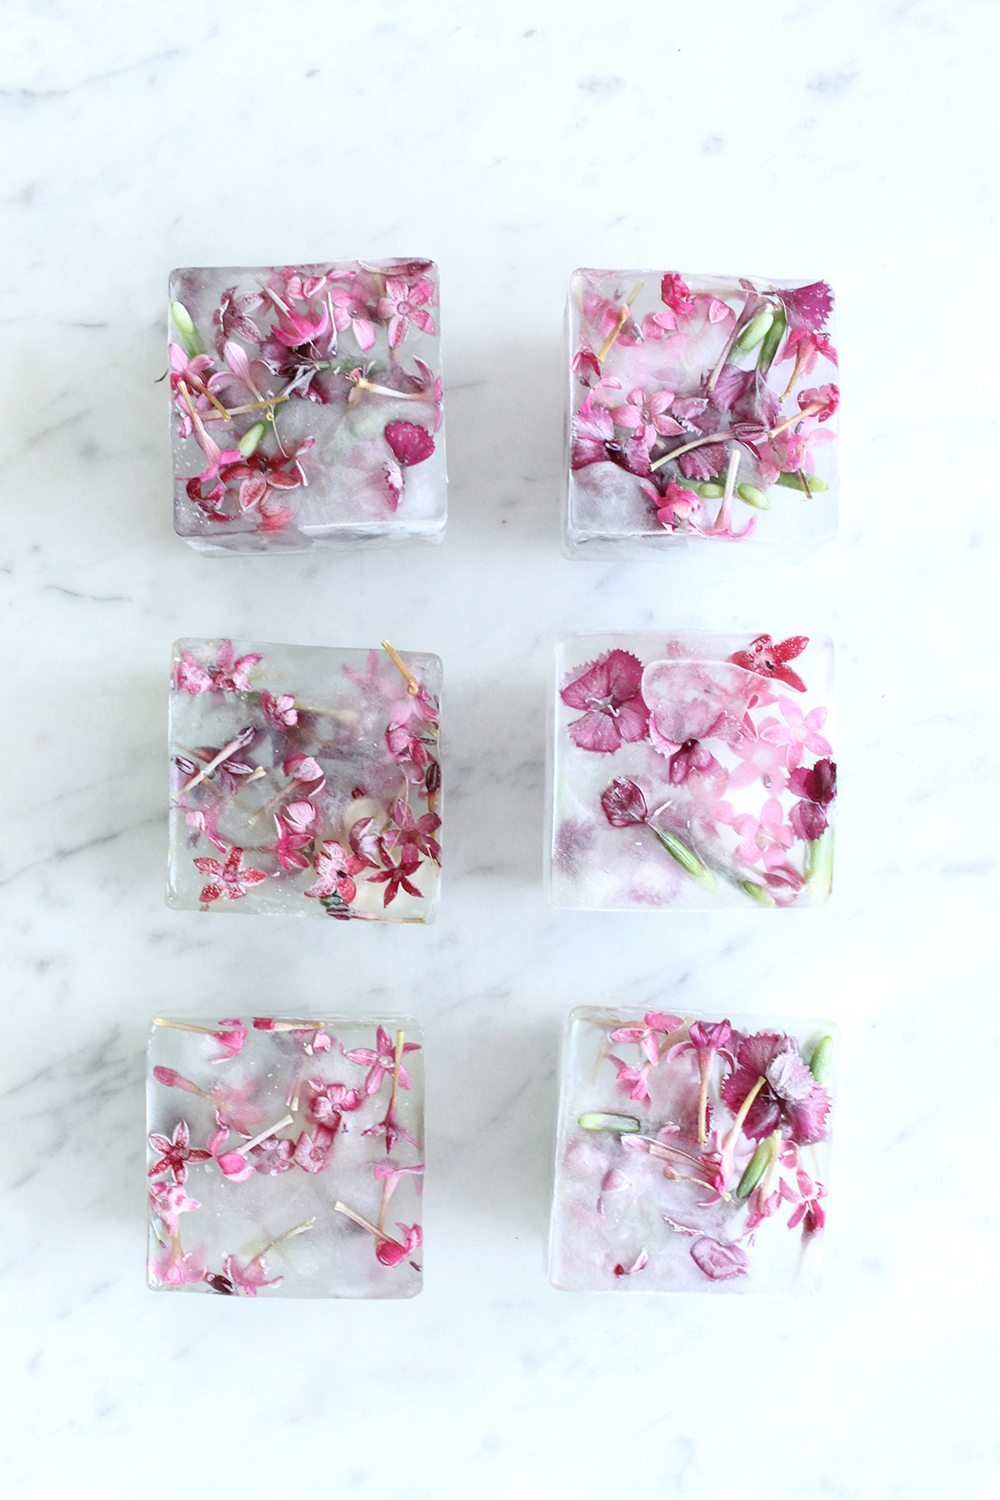 DIY Pink Floral Ice Cubes | Summer entertaining, summer party ideas and more from @cydconverse